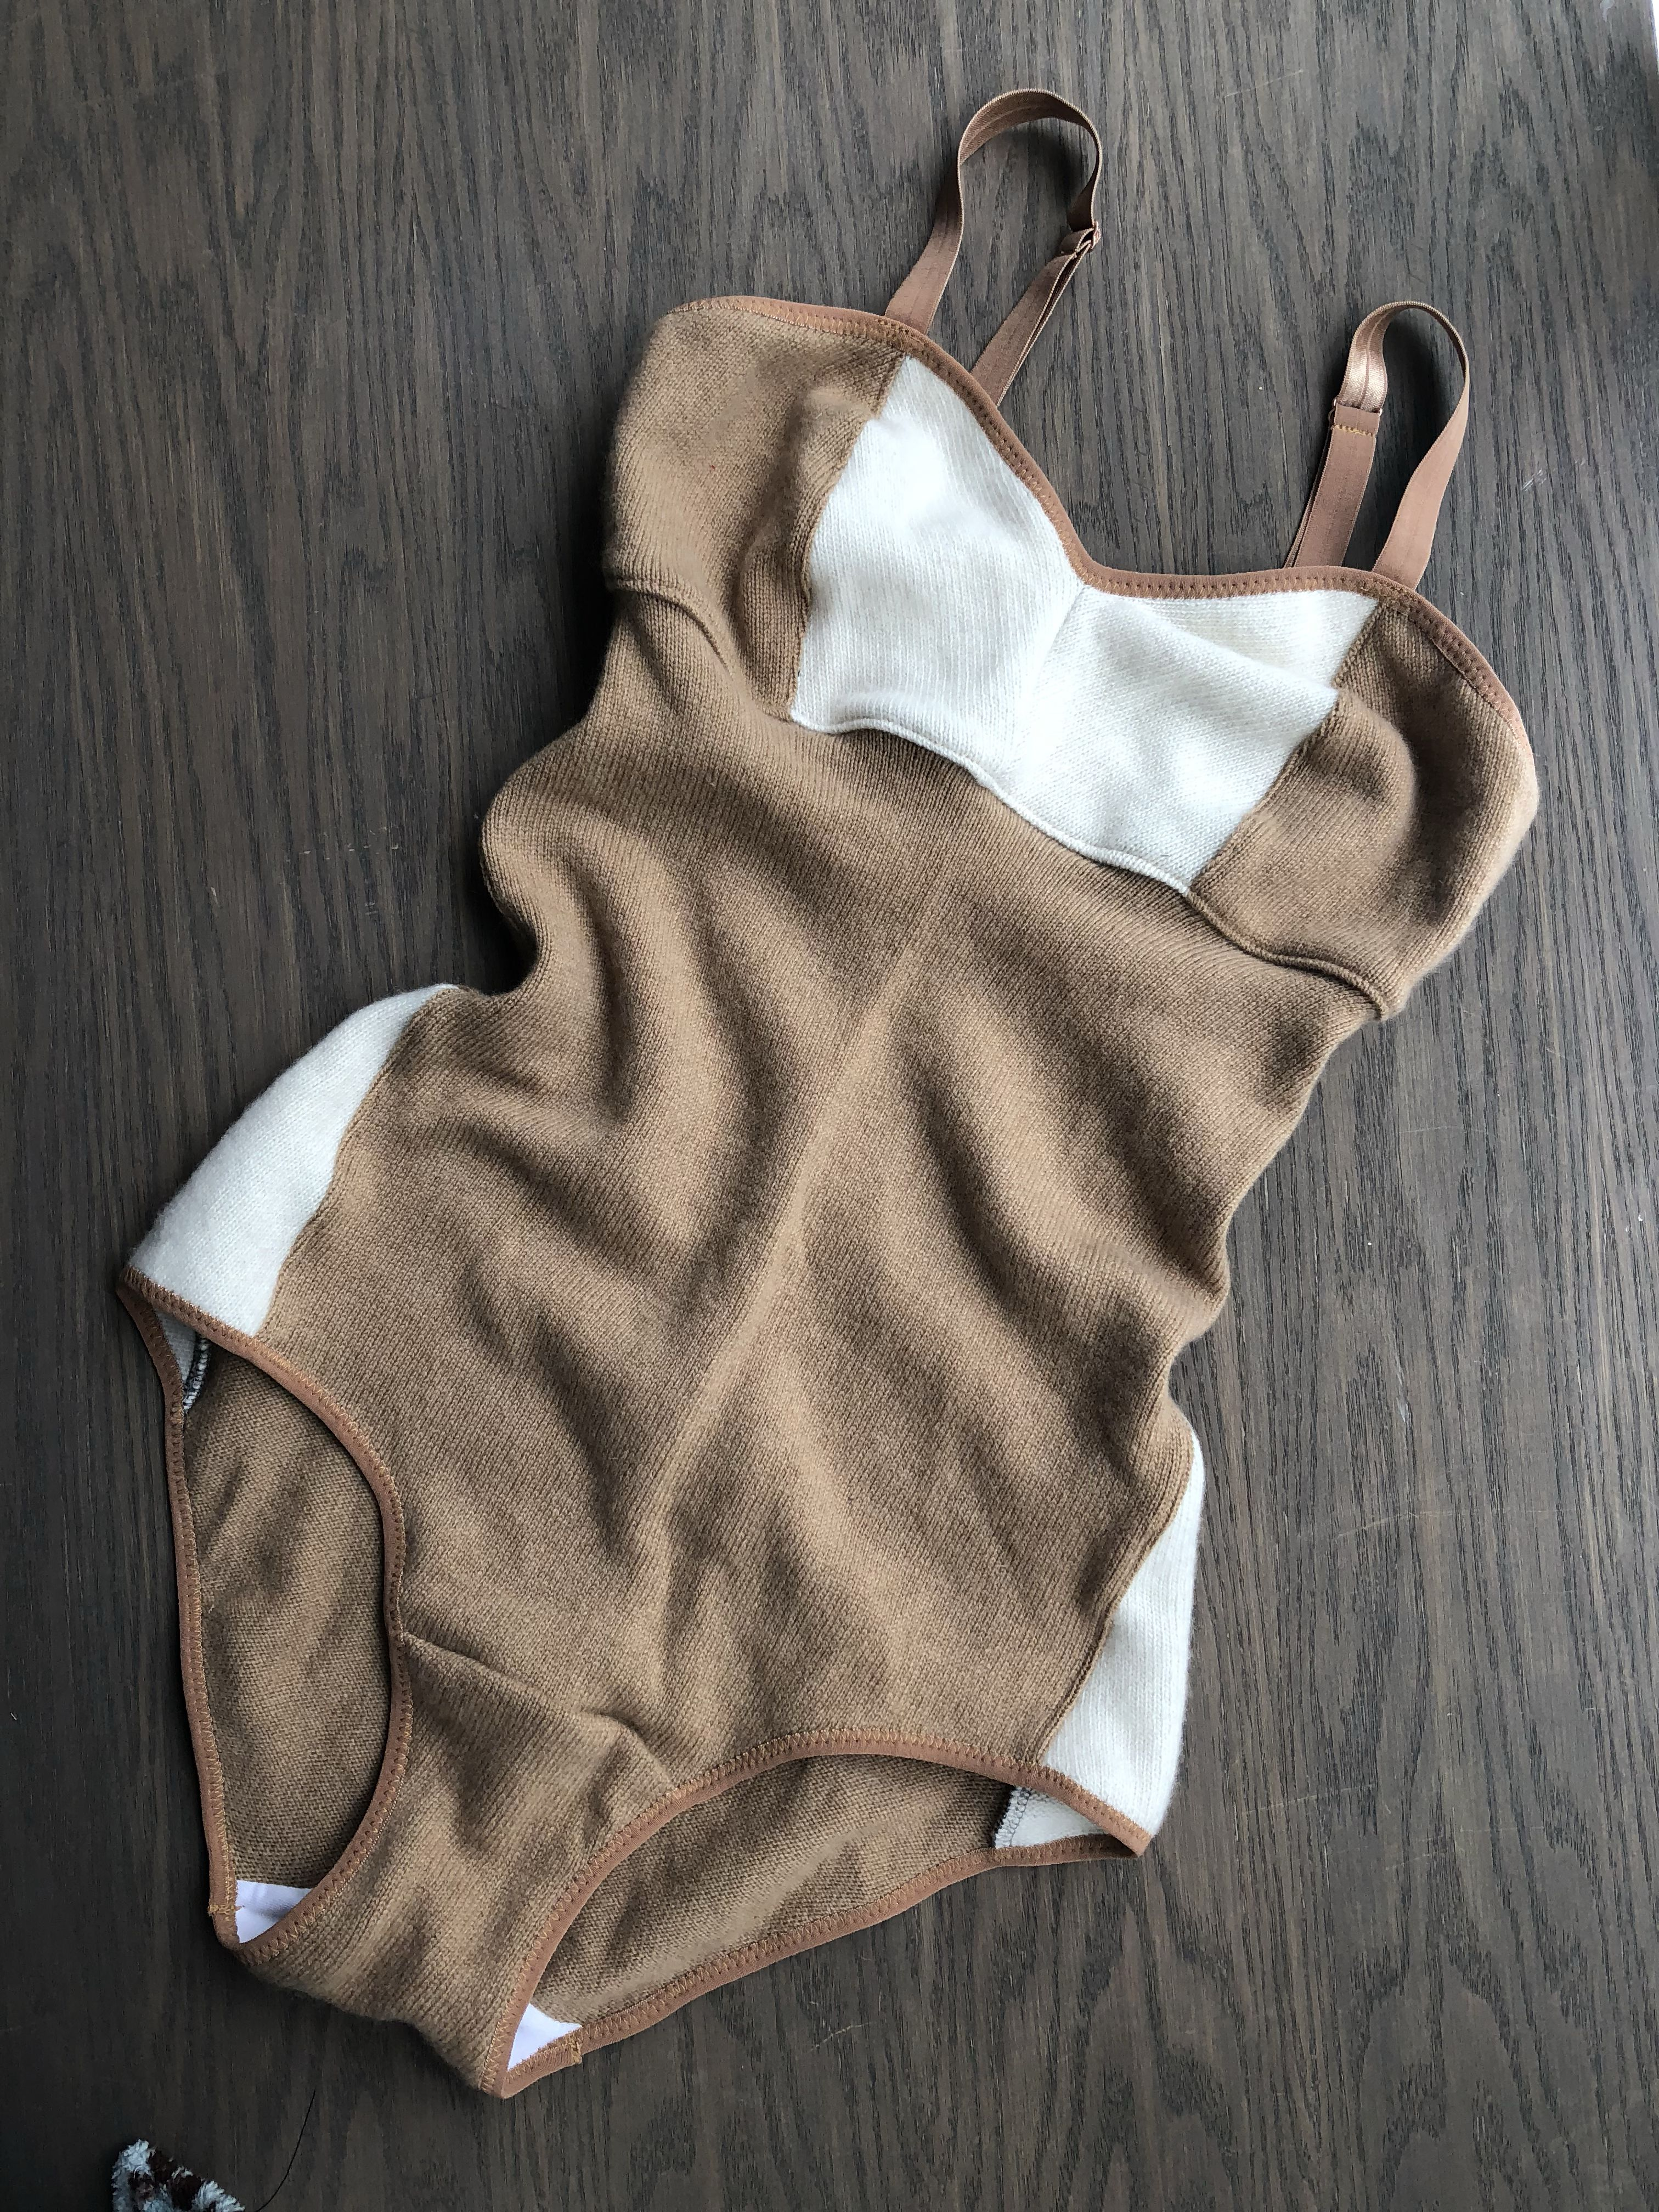 19af15387248 Cashmere bodysuit by Econica. #handmade in Canada #organic #clothing & # lingerie